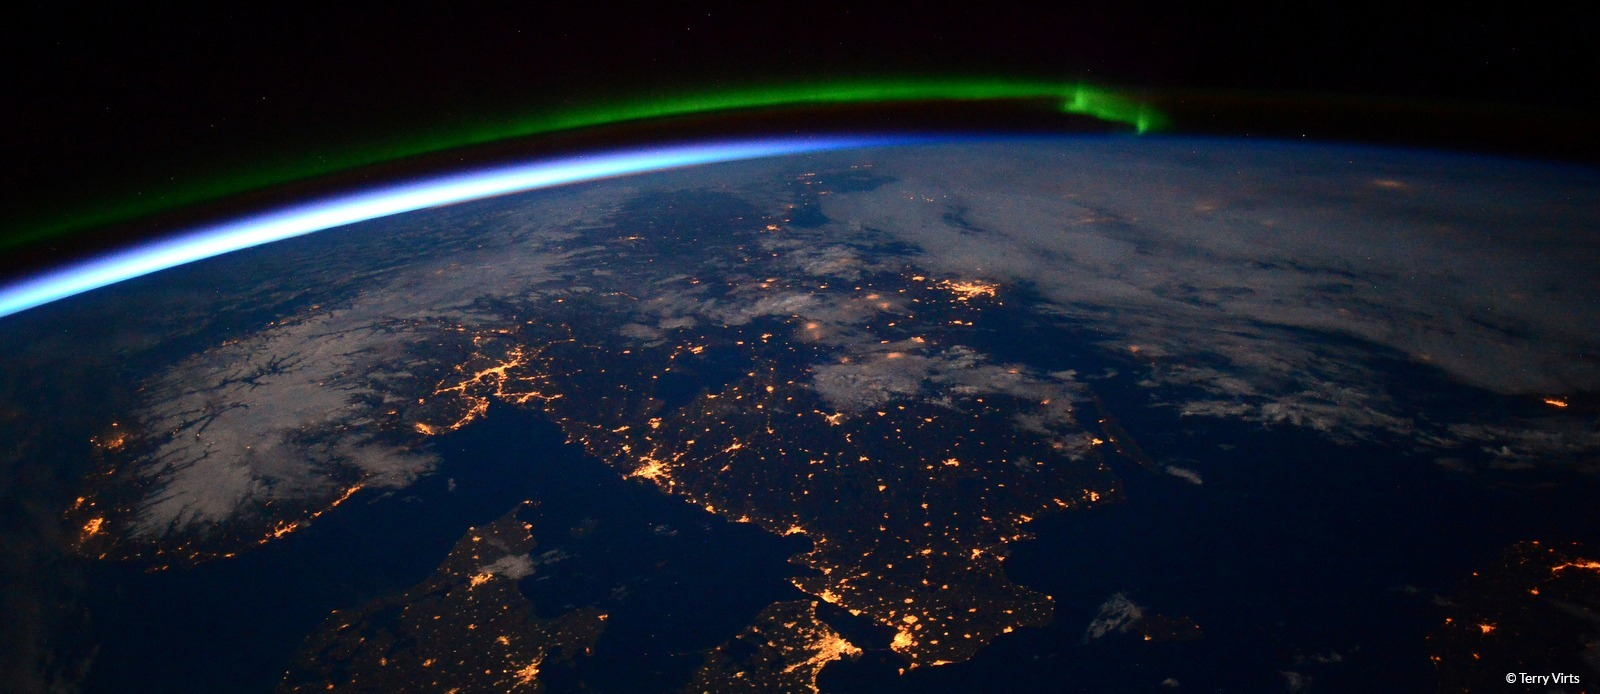 A view of earth from space with northern lights